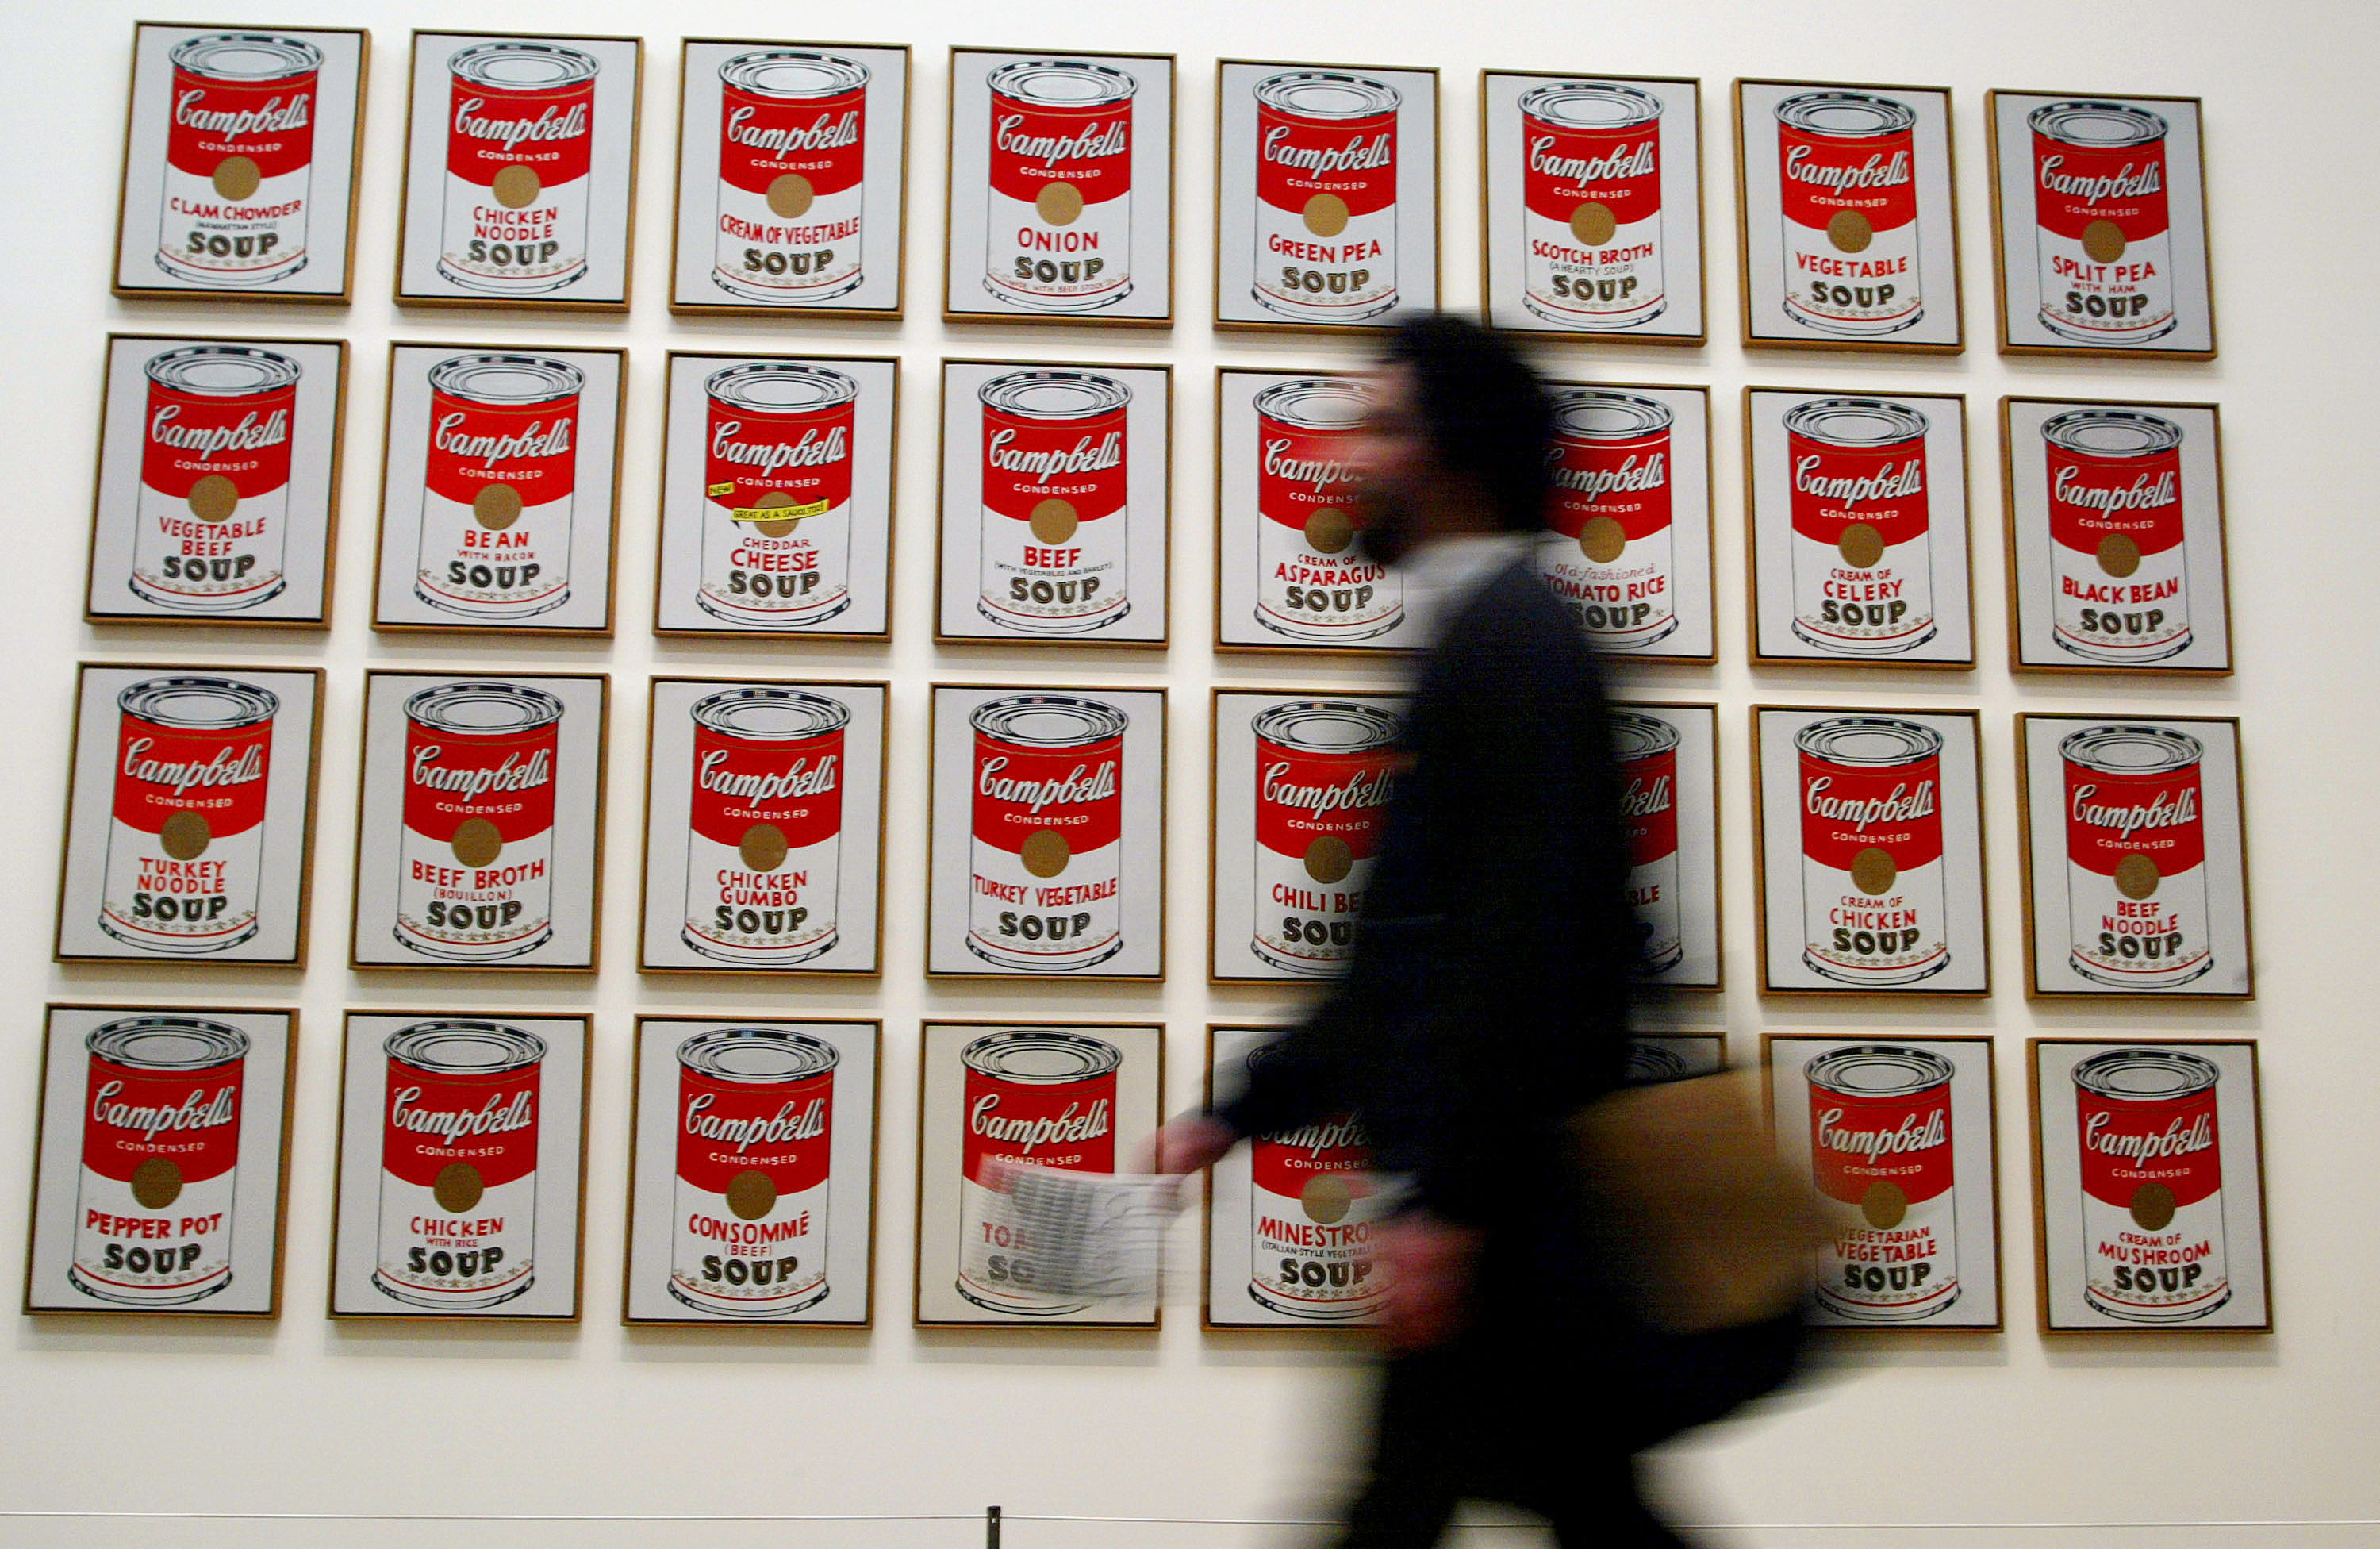 A spectator walks past  Campbells Soup Cans  created in 1962 by artist Andy Warhol at the Andy Warhol retrospective exhibition February 5, 2002 at the Tate Modern Gallery in London.